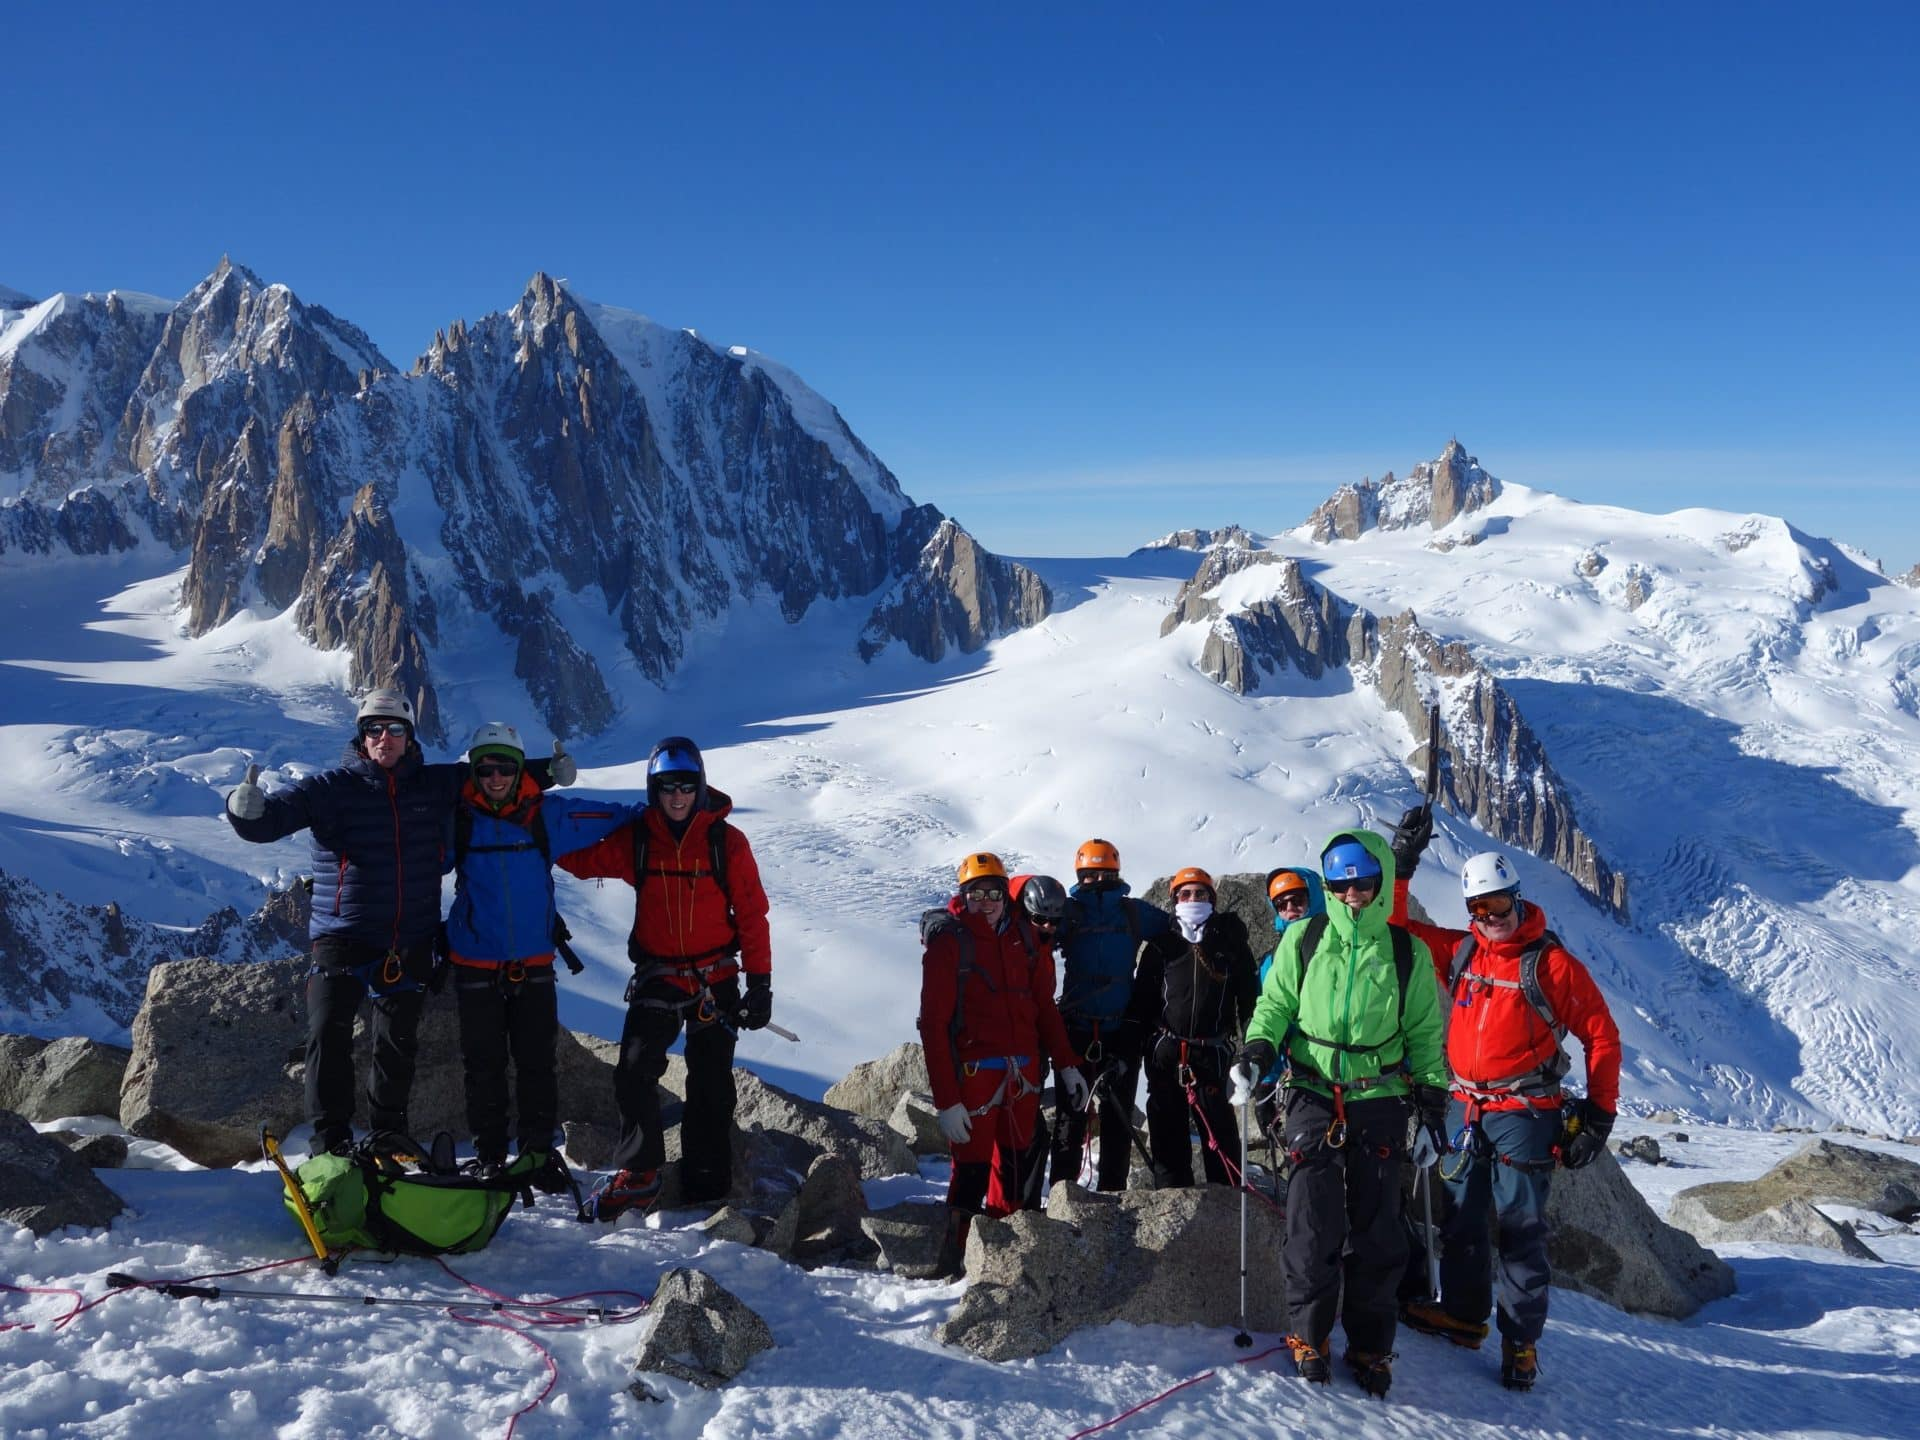 Guided mountaineering tour in the Alps